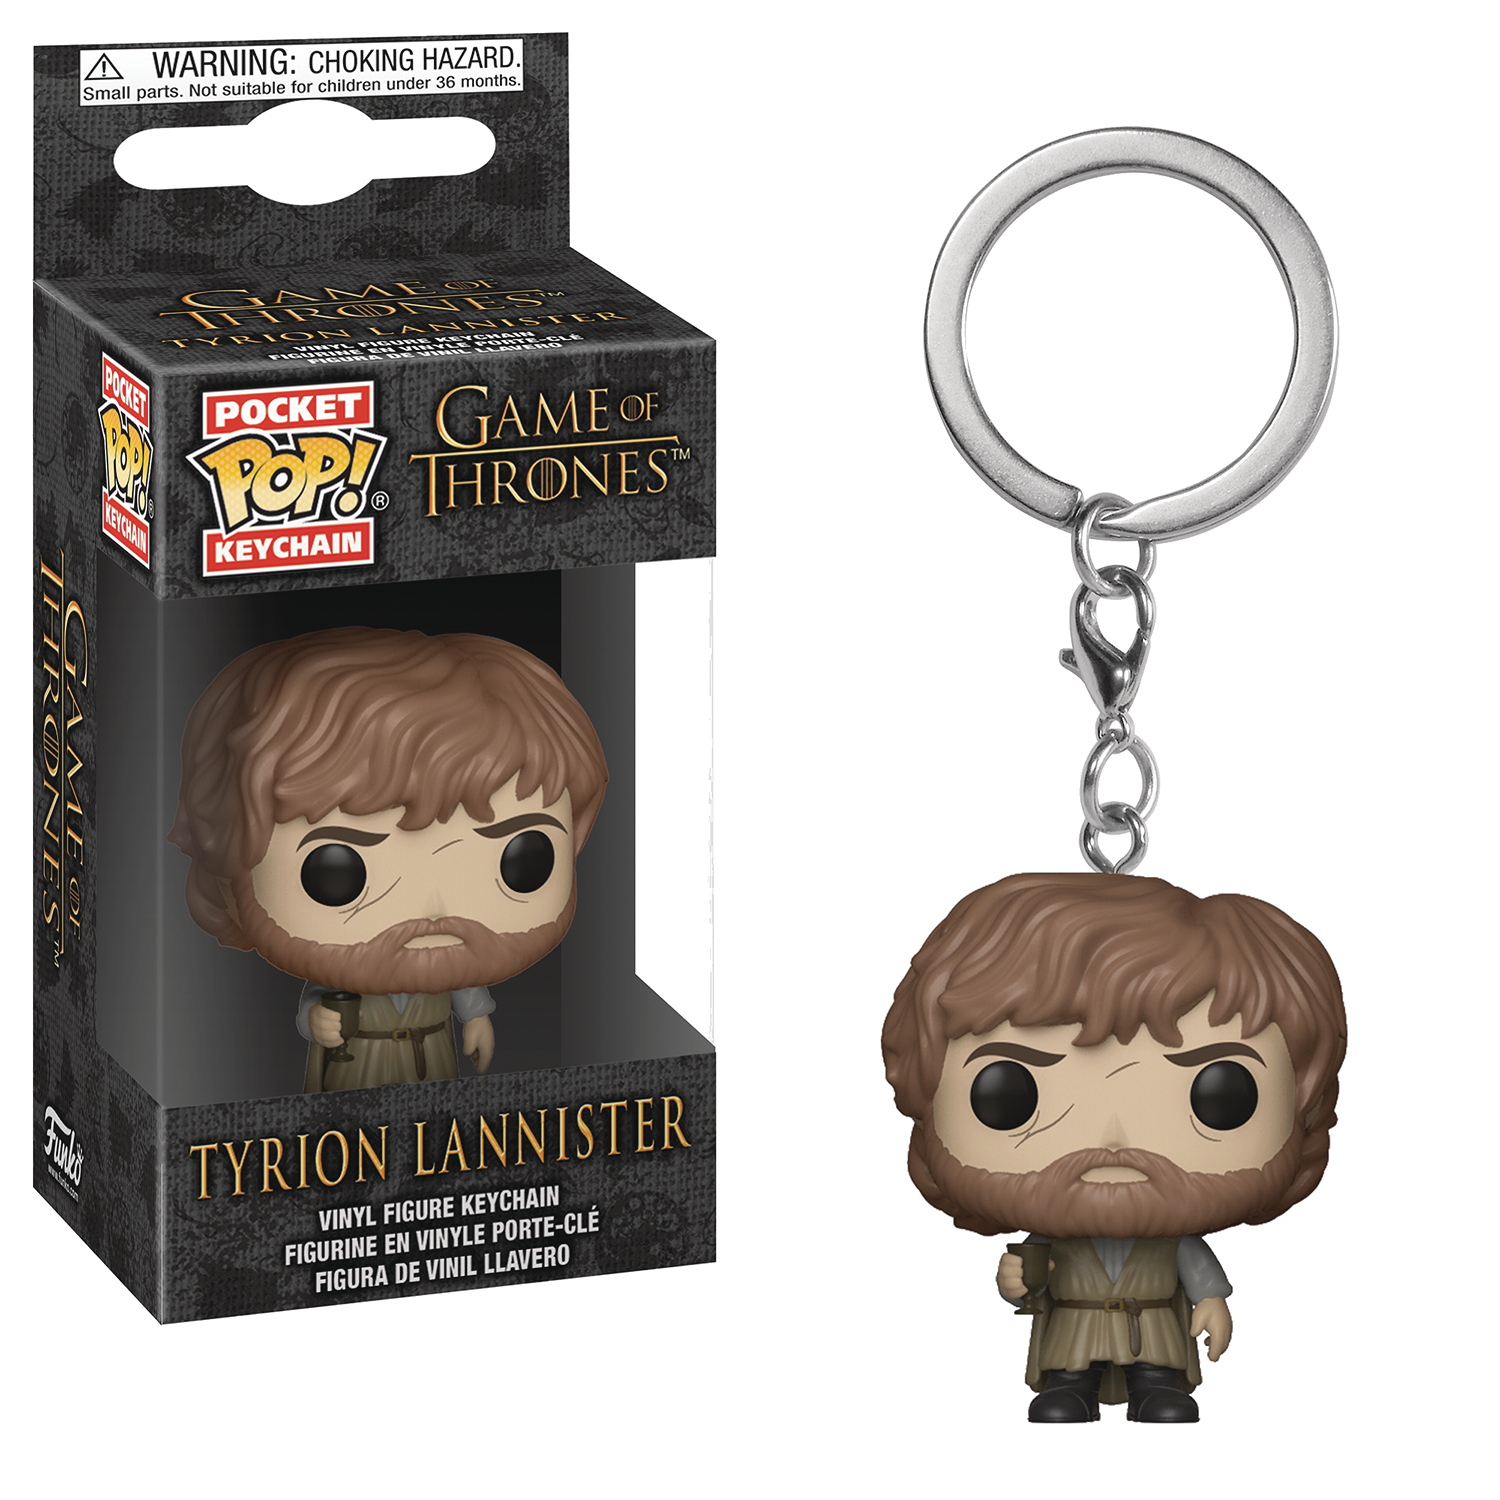 POCKET POP GOT S9 TYRION LANNISTER FIG KEYCHAIN